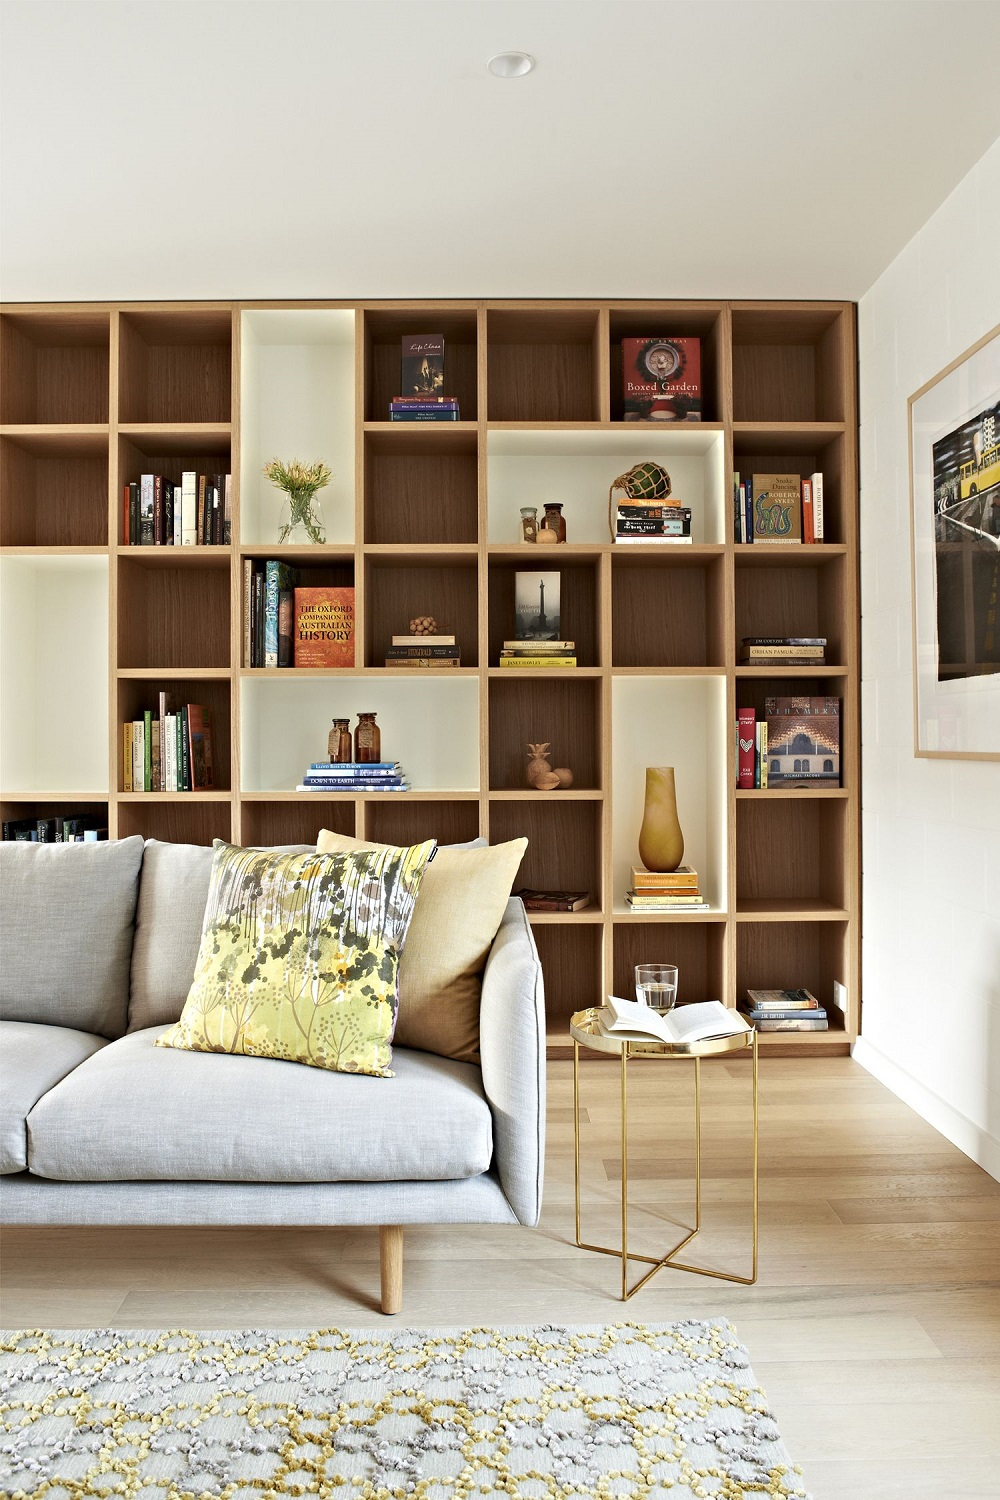 ms8 Modular shelving systems and how you can decorate them